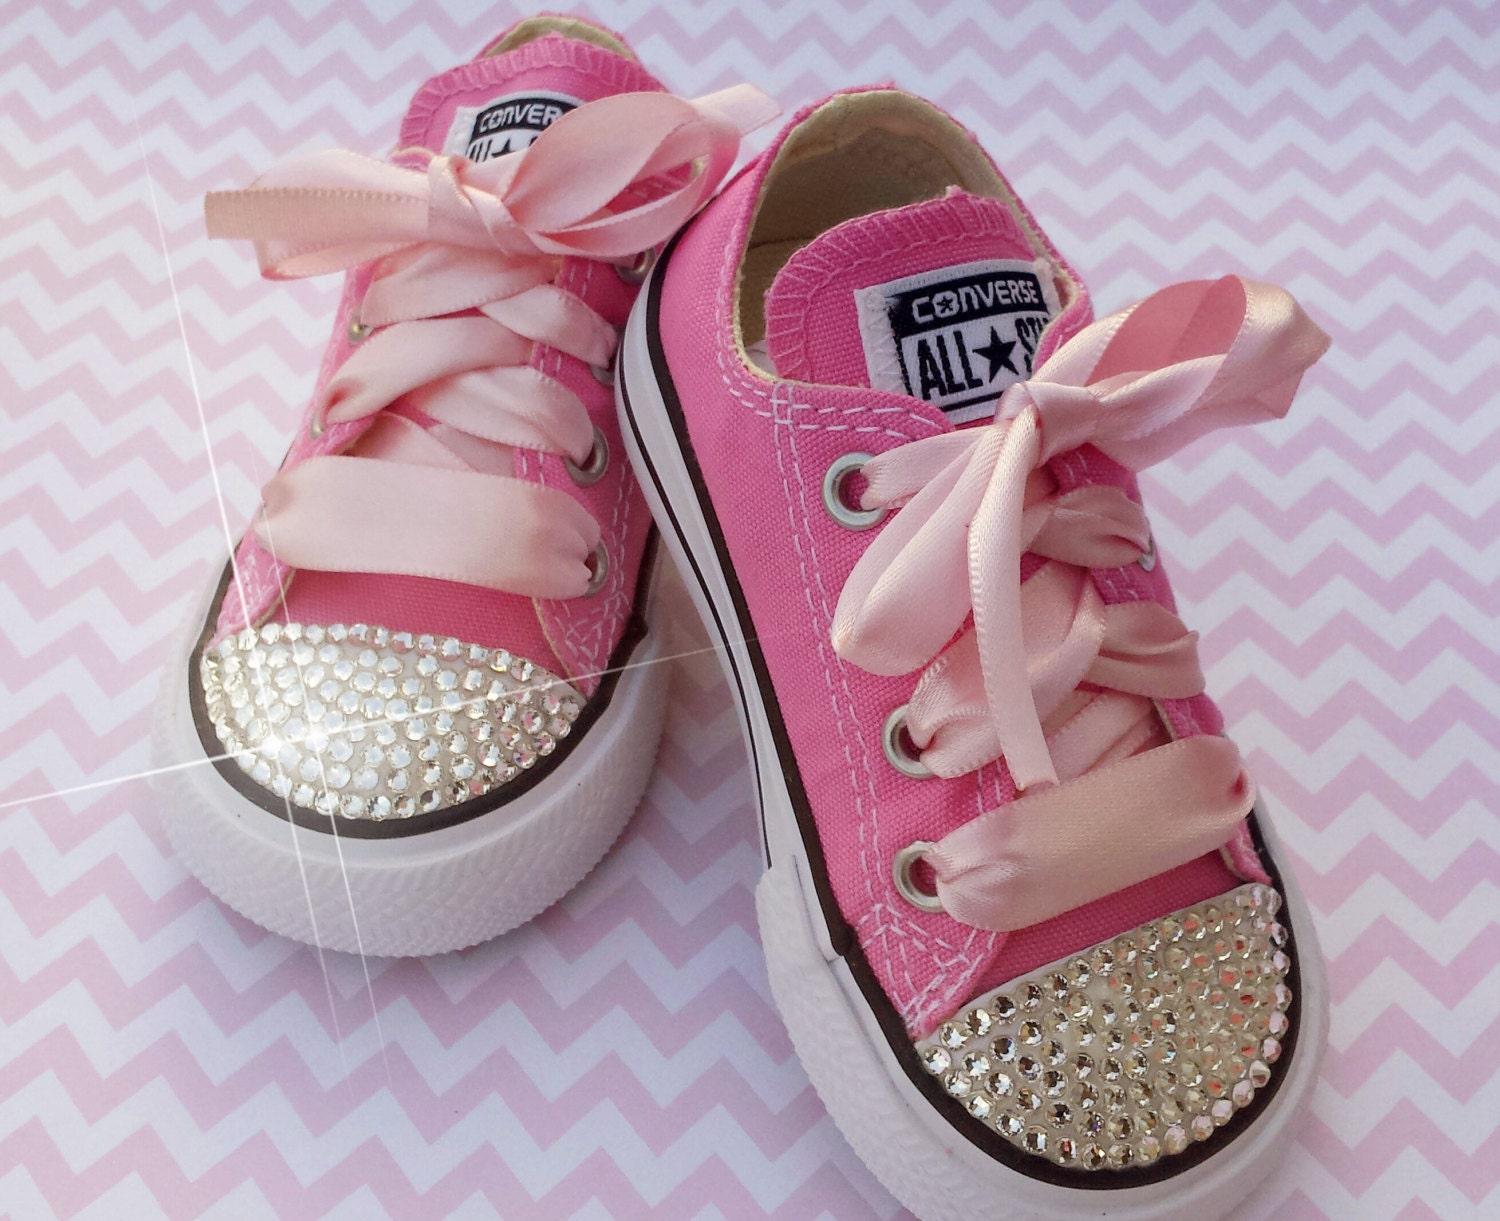 Bedazzled Converse Baby Shoes